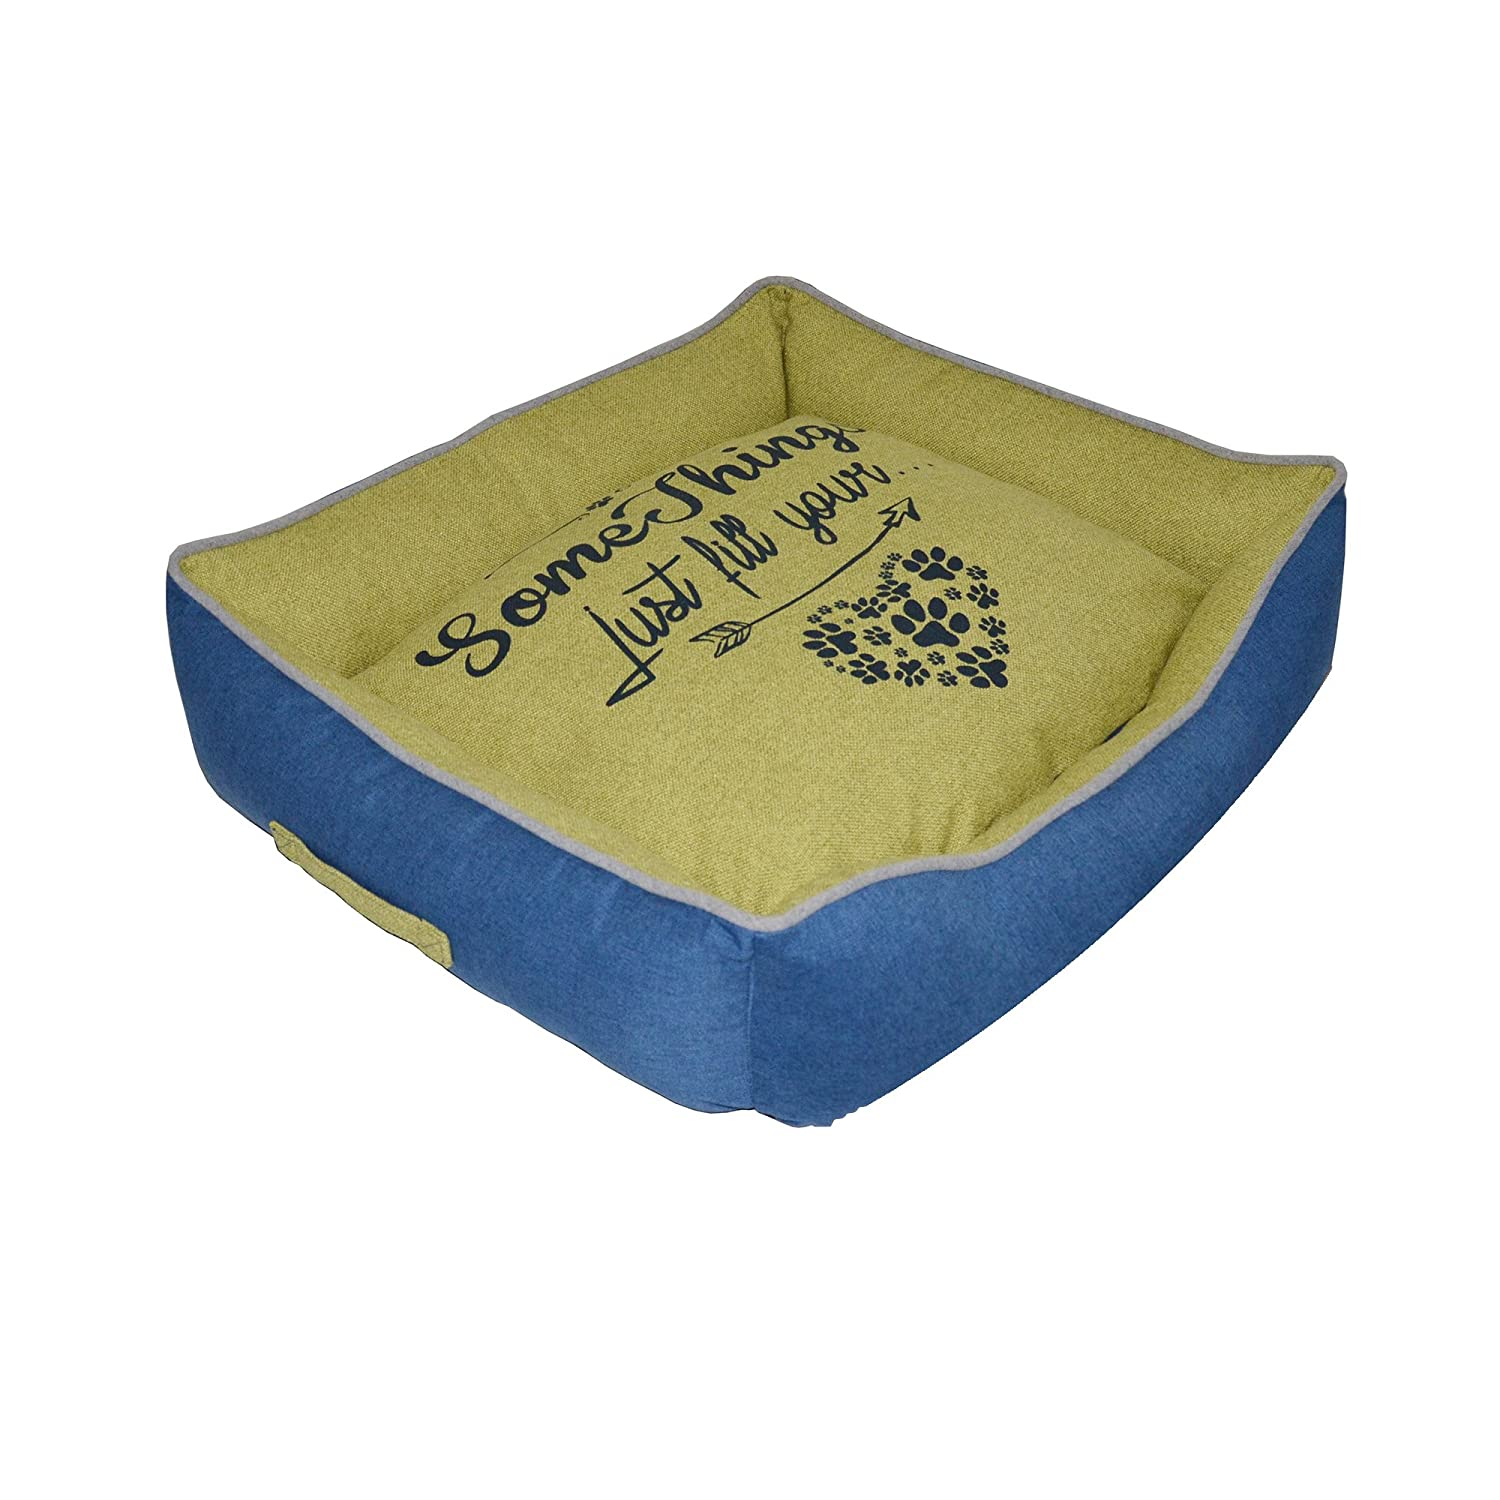 CROCI Pet Stuffed Rectangular Bed Family Series, 70 x 60 x 20 cm